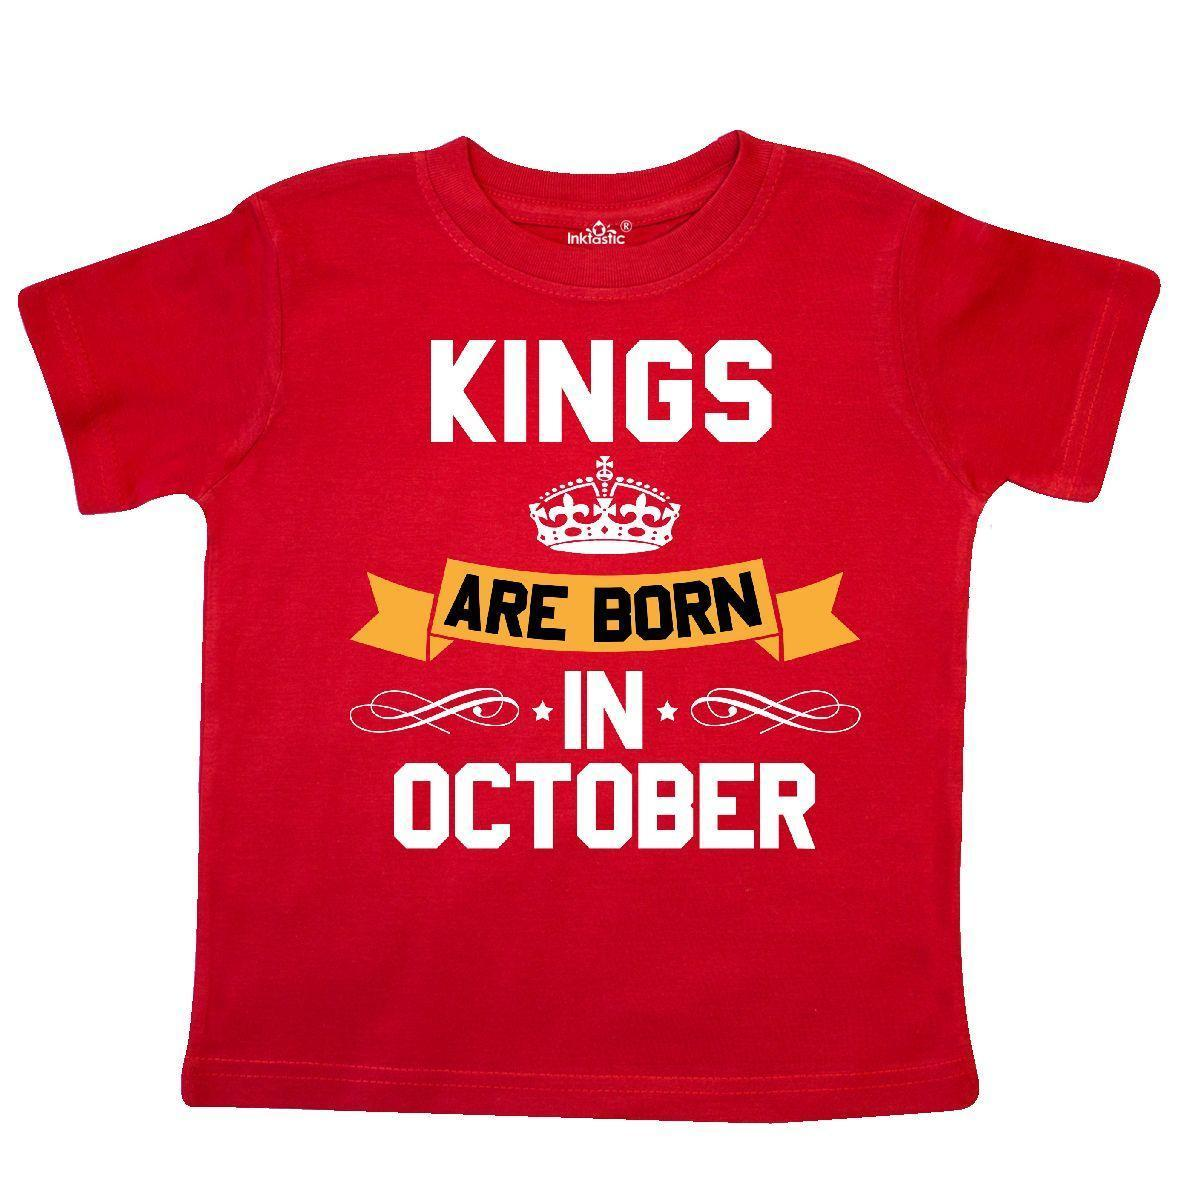 d373118e6 Inktastic Kings Are Born In October Toddler T Shirt Birthdays Adult King  Month Tee Shirts Design T Shirts Buy Online From Yuxin08, $13.8| DHgate.Com